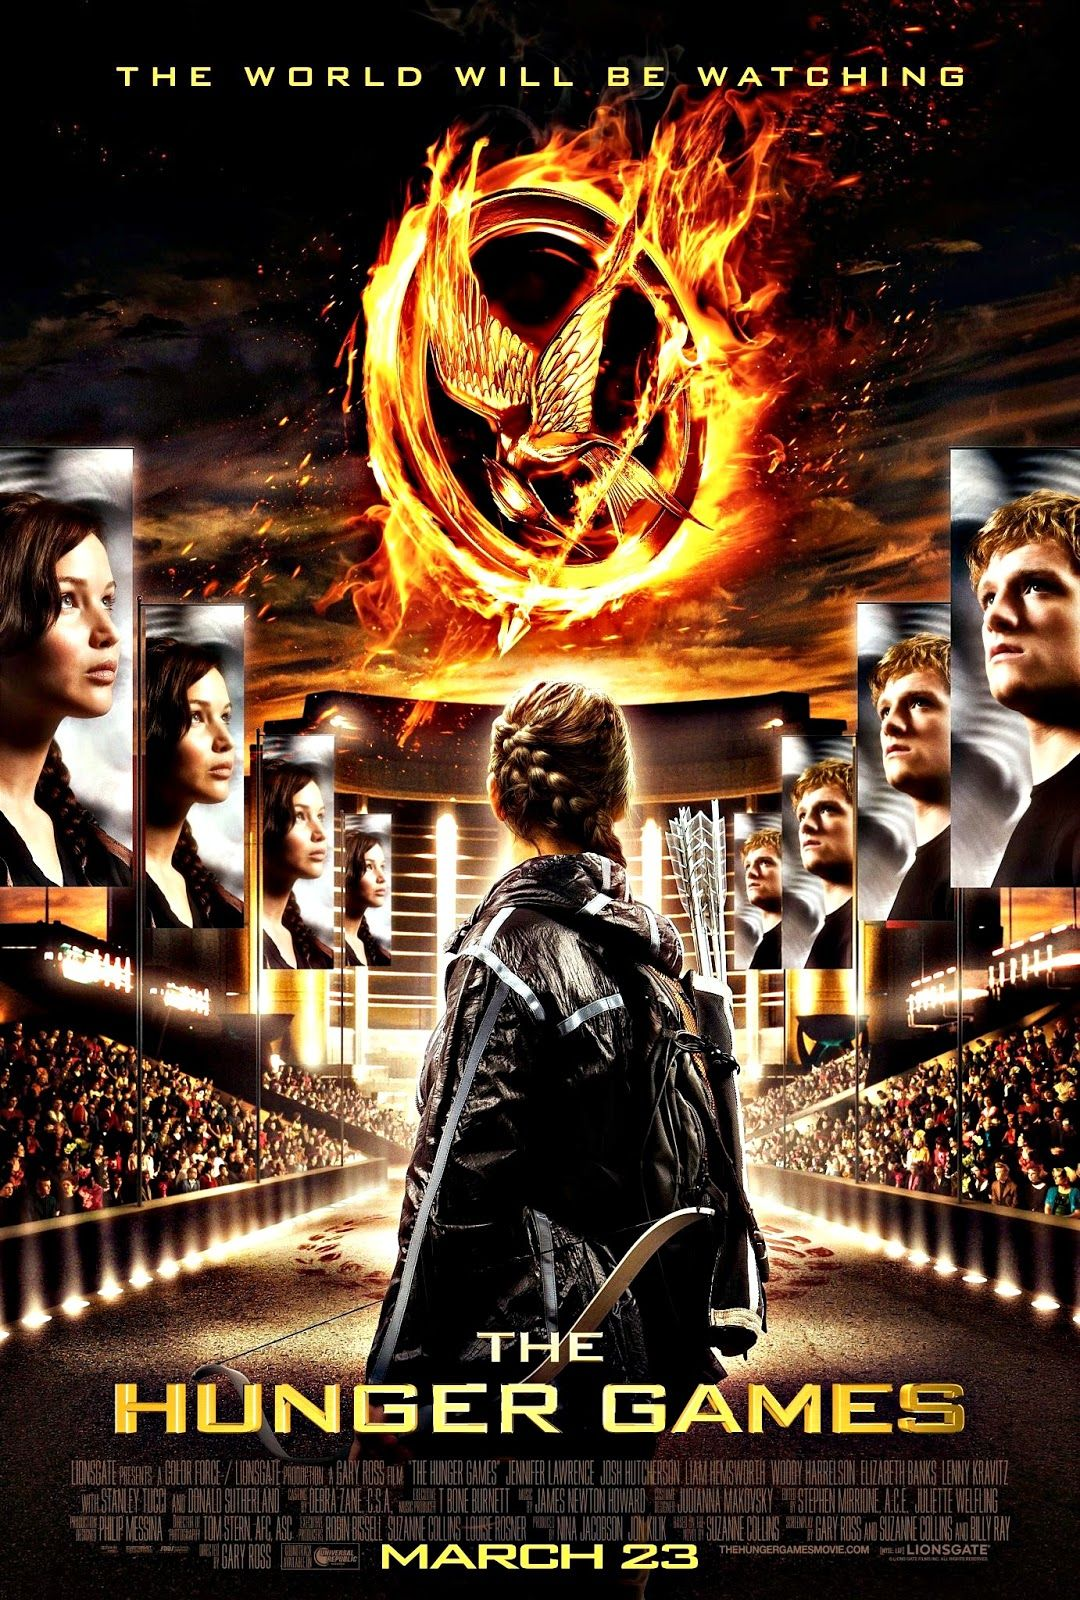 Hunger Games 2 Movie Poster See Best Of Photos Of The Hunger